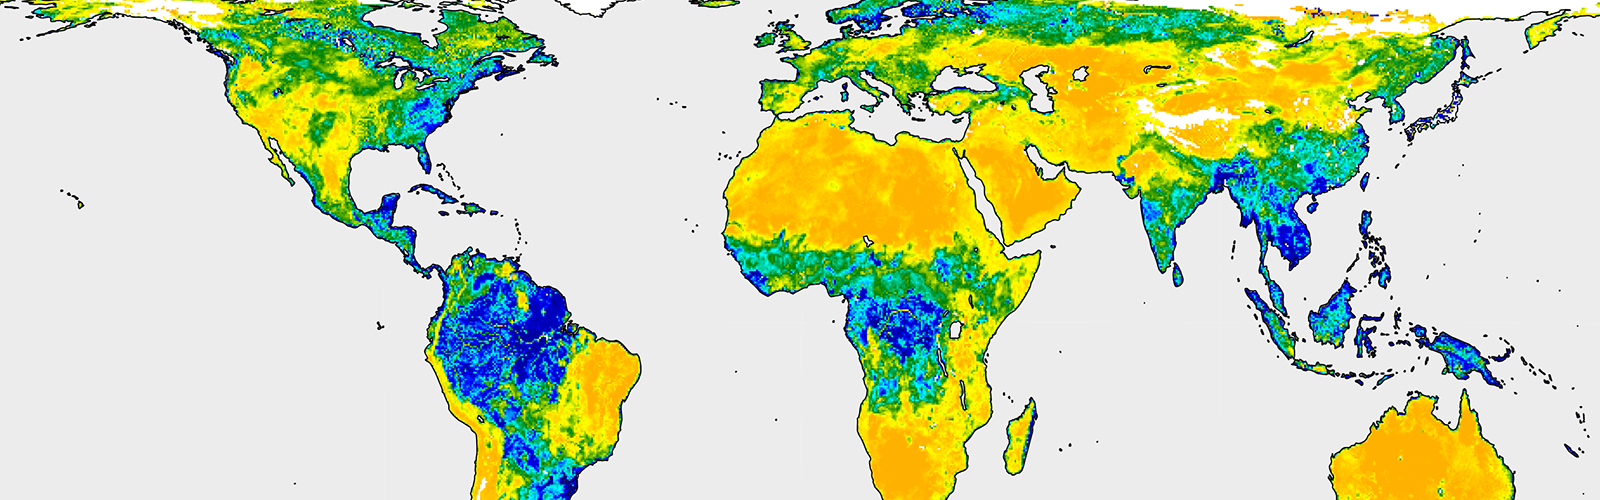 slide 1 - The beta version of Level-2 and Level-3 radiometer data from NASA's Soil Moisture Active Passive (SMAP) mission is now available at the NASA National Snow and Ice Data Center Distributed Active Archive Center (NSIDC DAAC).